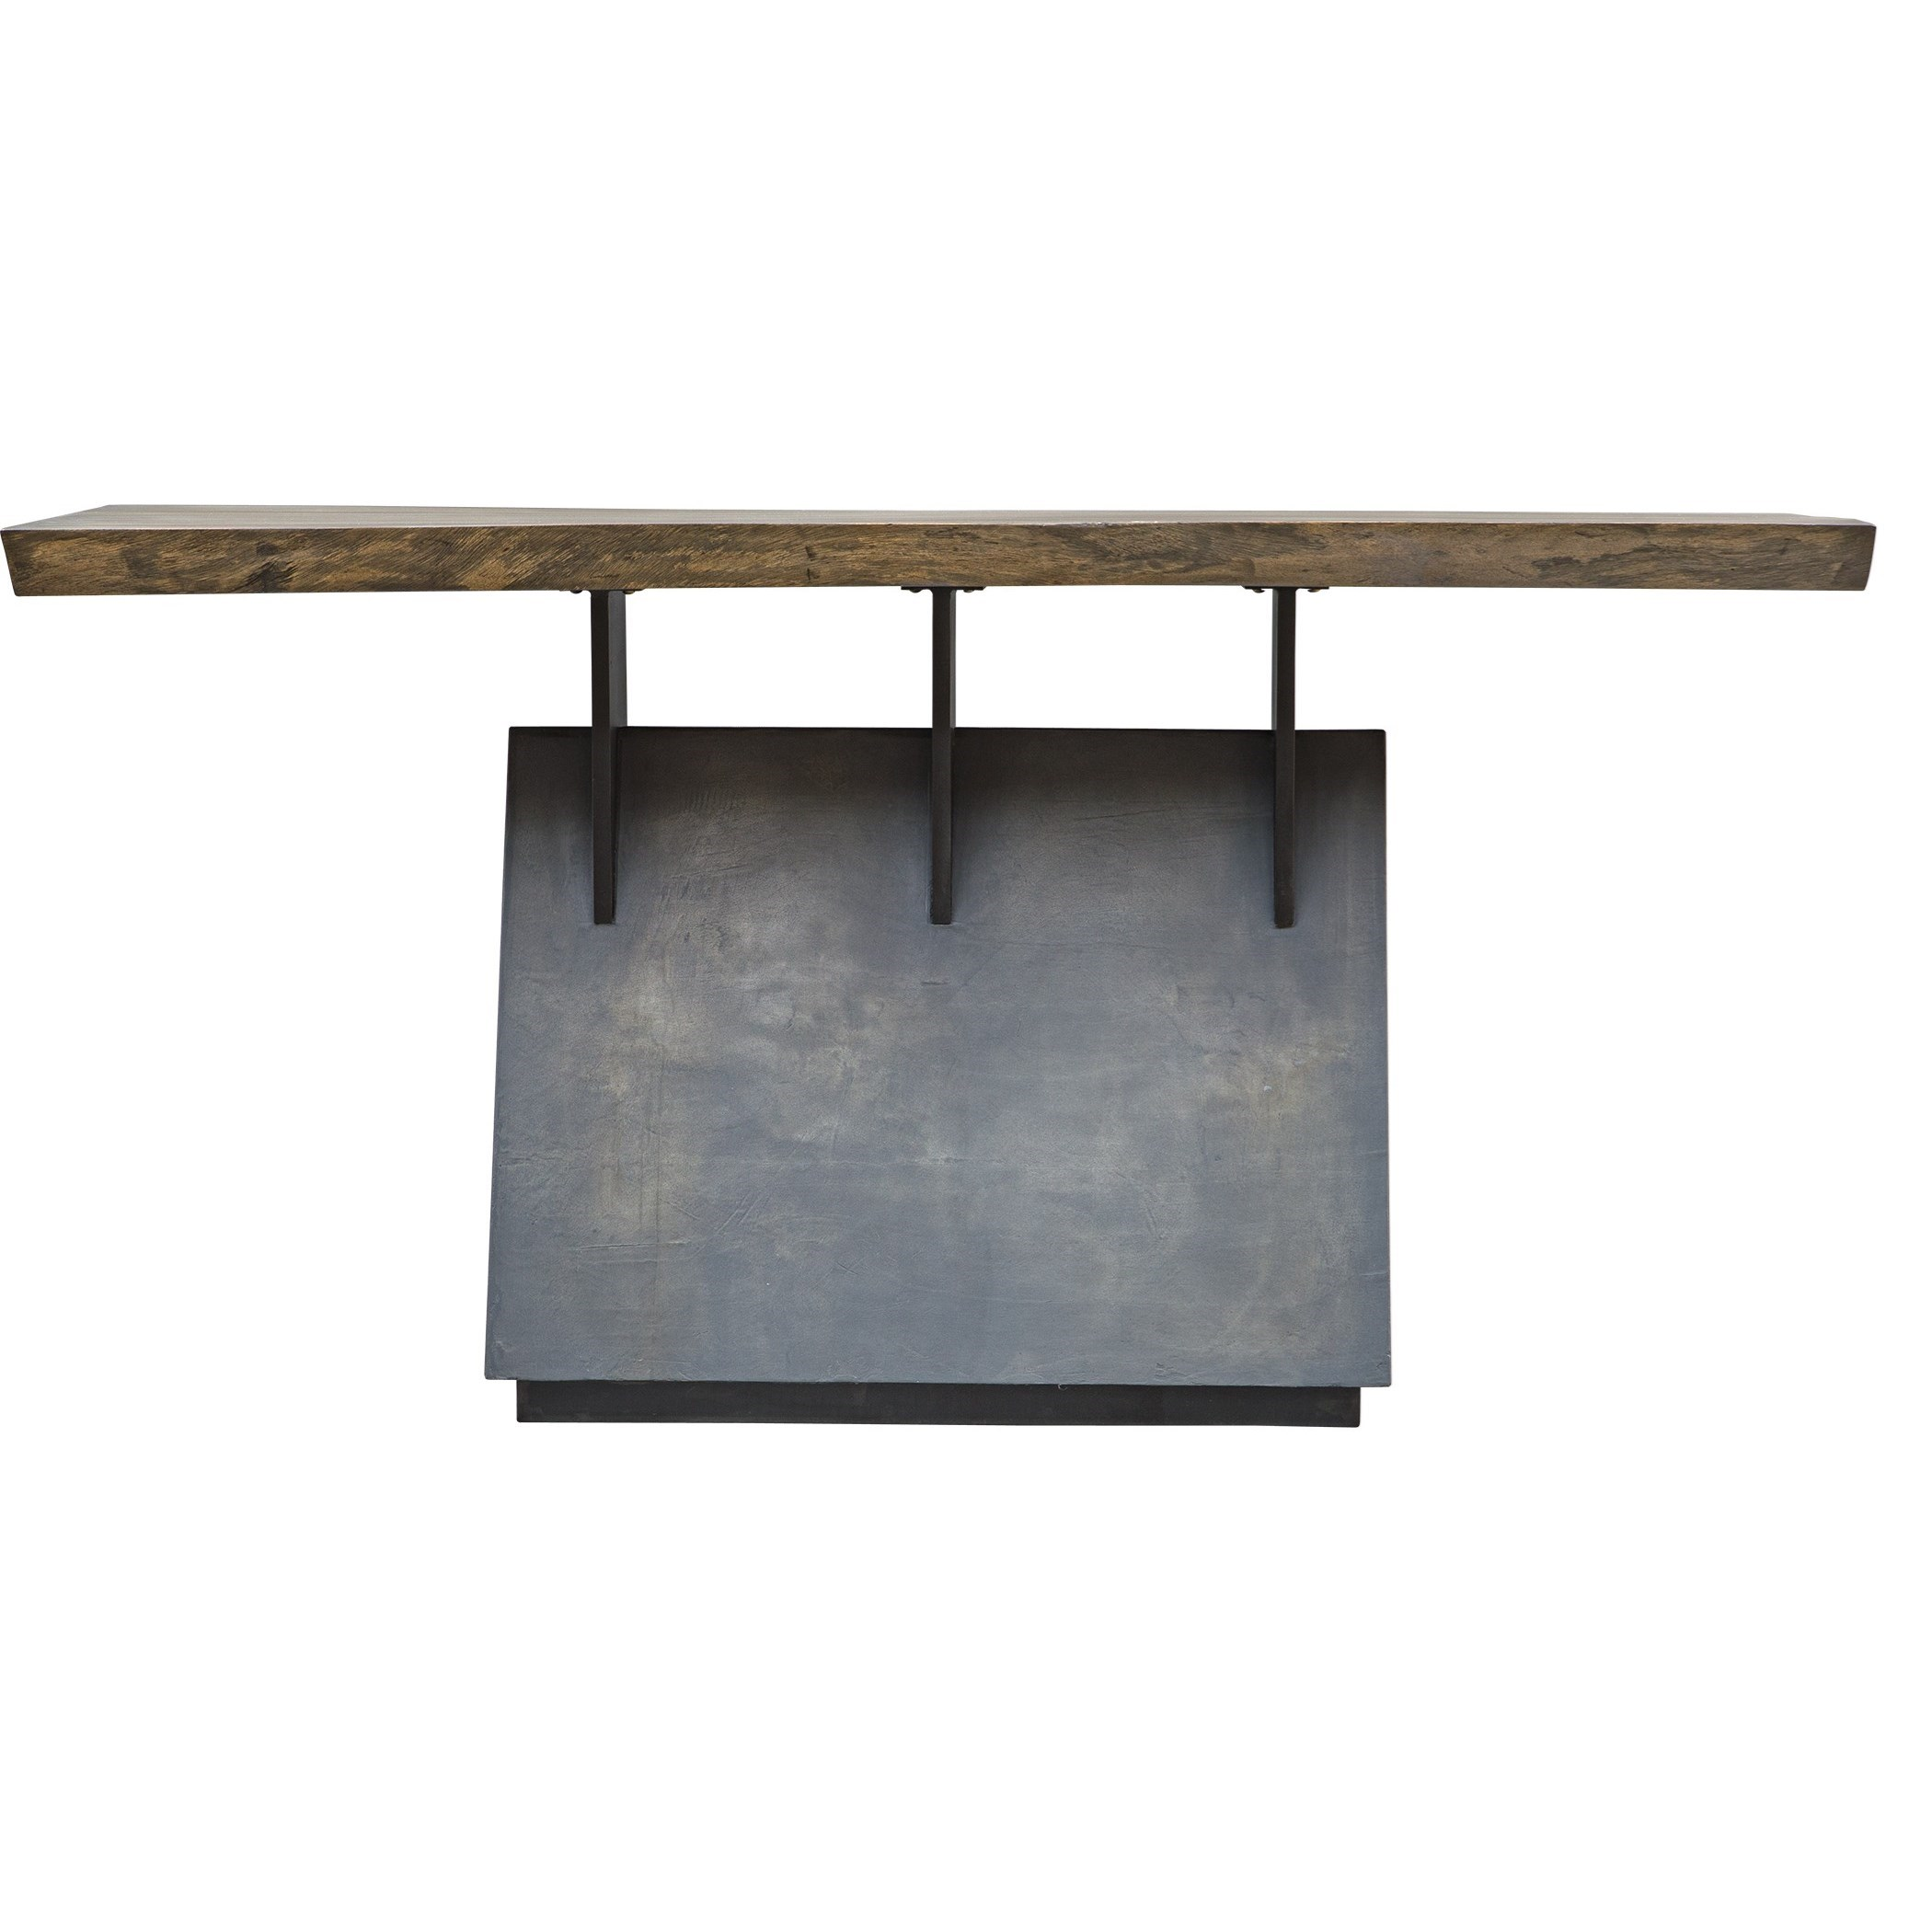 Accent Furniture - Occasional Tables Vessel Industrial Console Table by Uttermost at Factory Direct Furniture